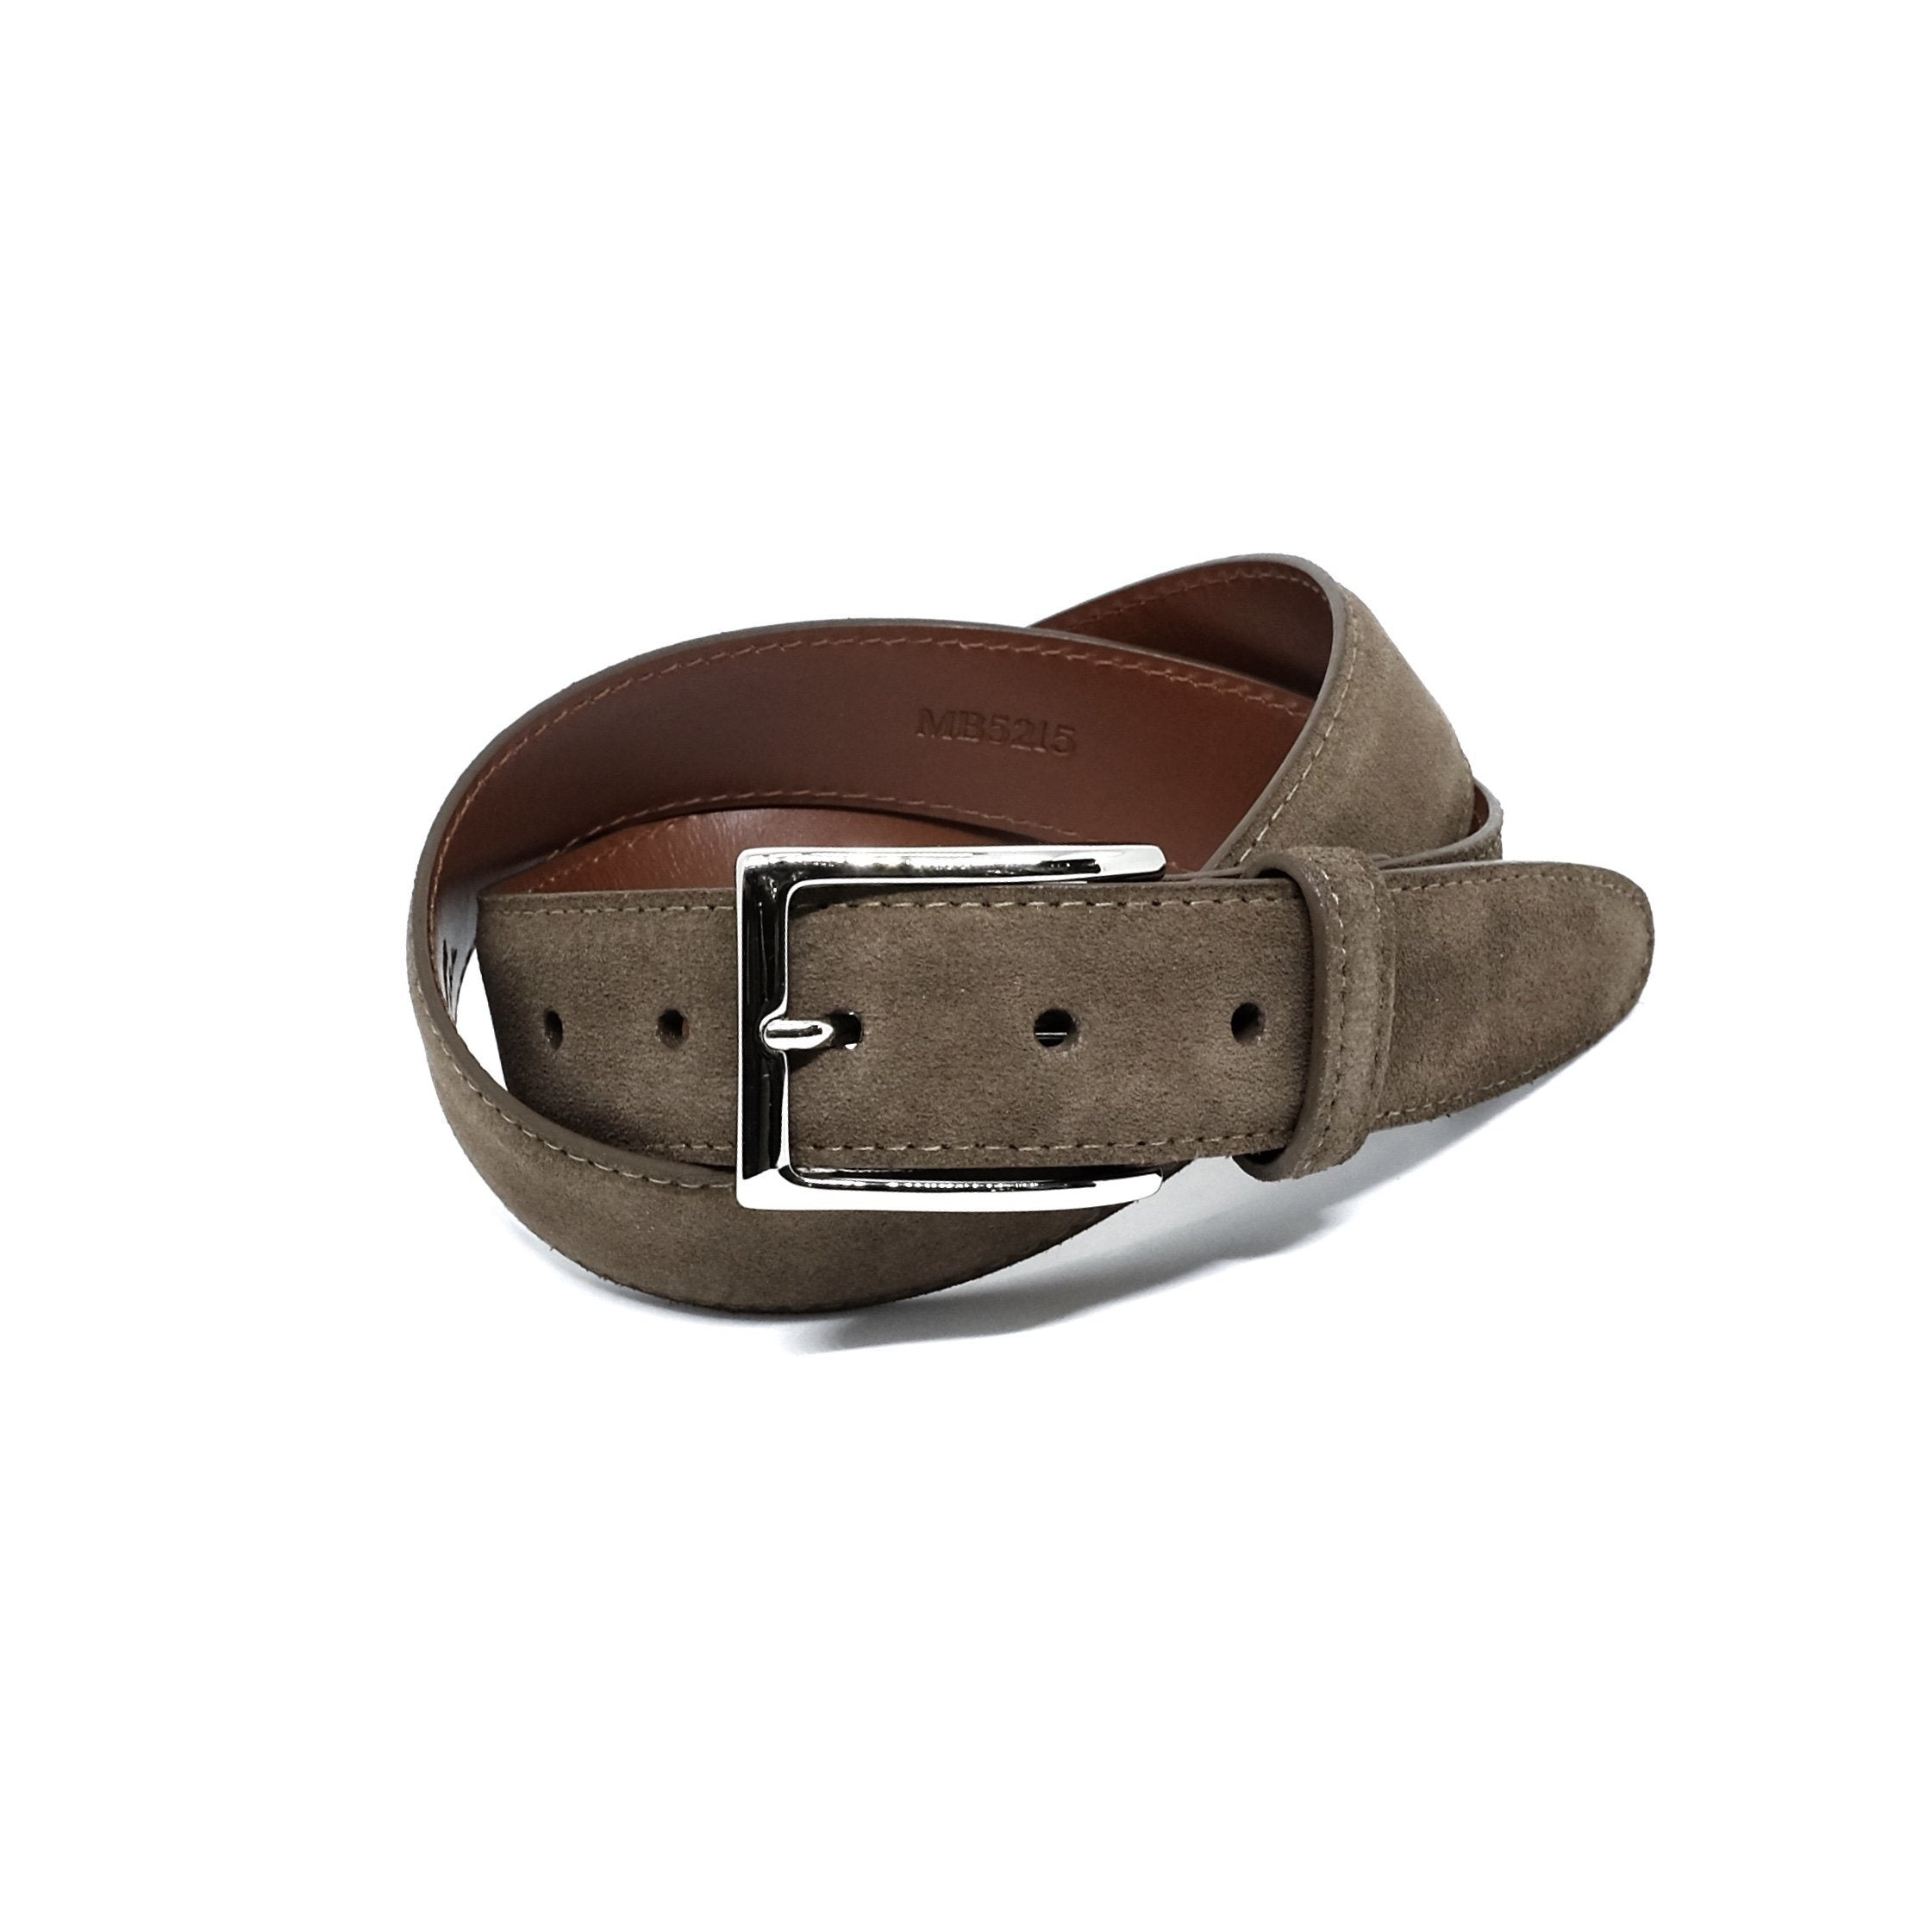 ALDEN MB5215 35mm Brown Suede Belt & Buckle